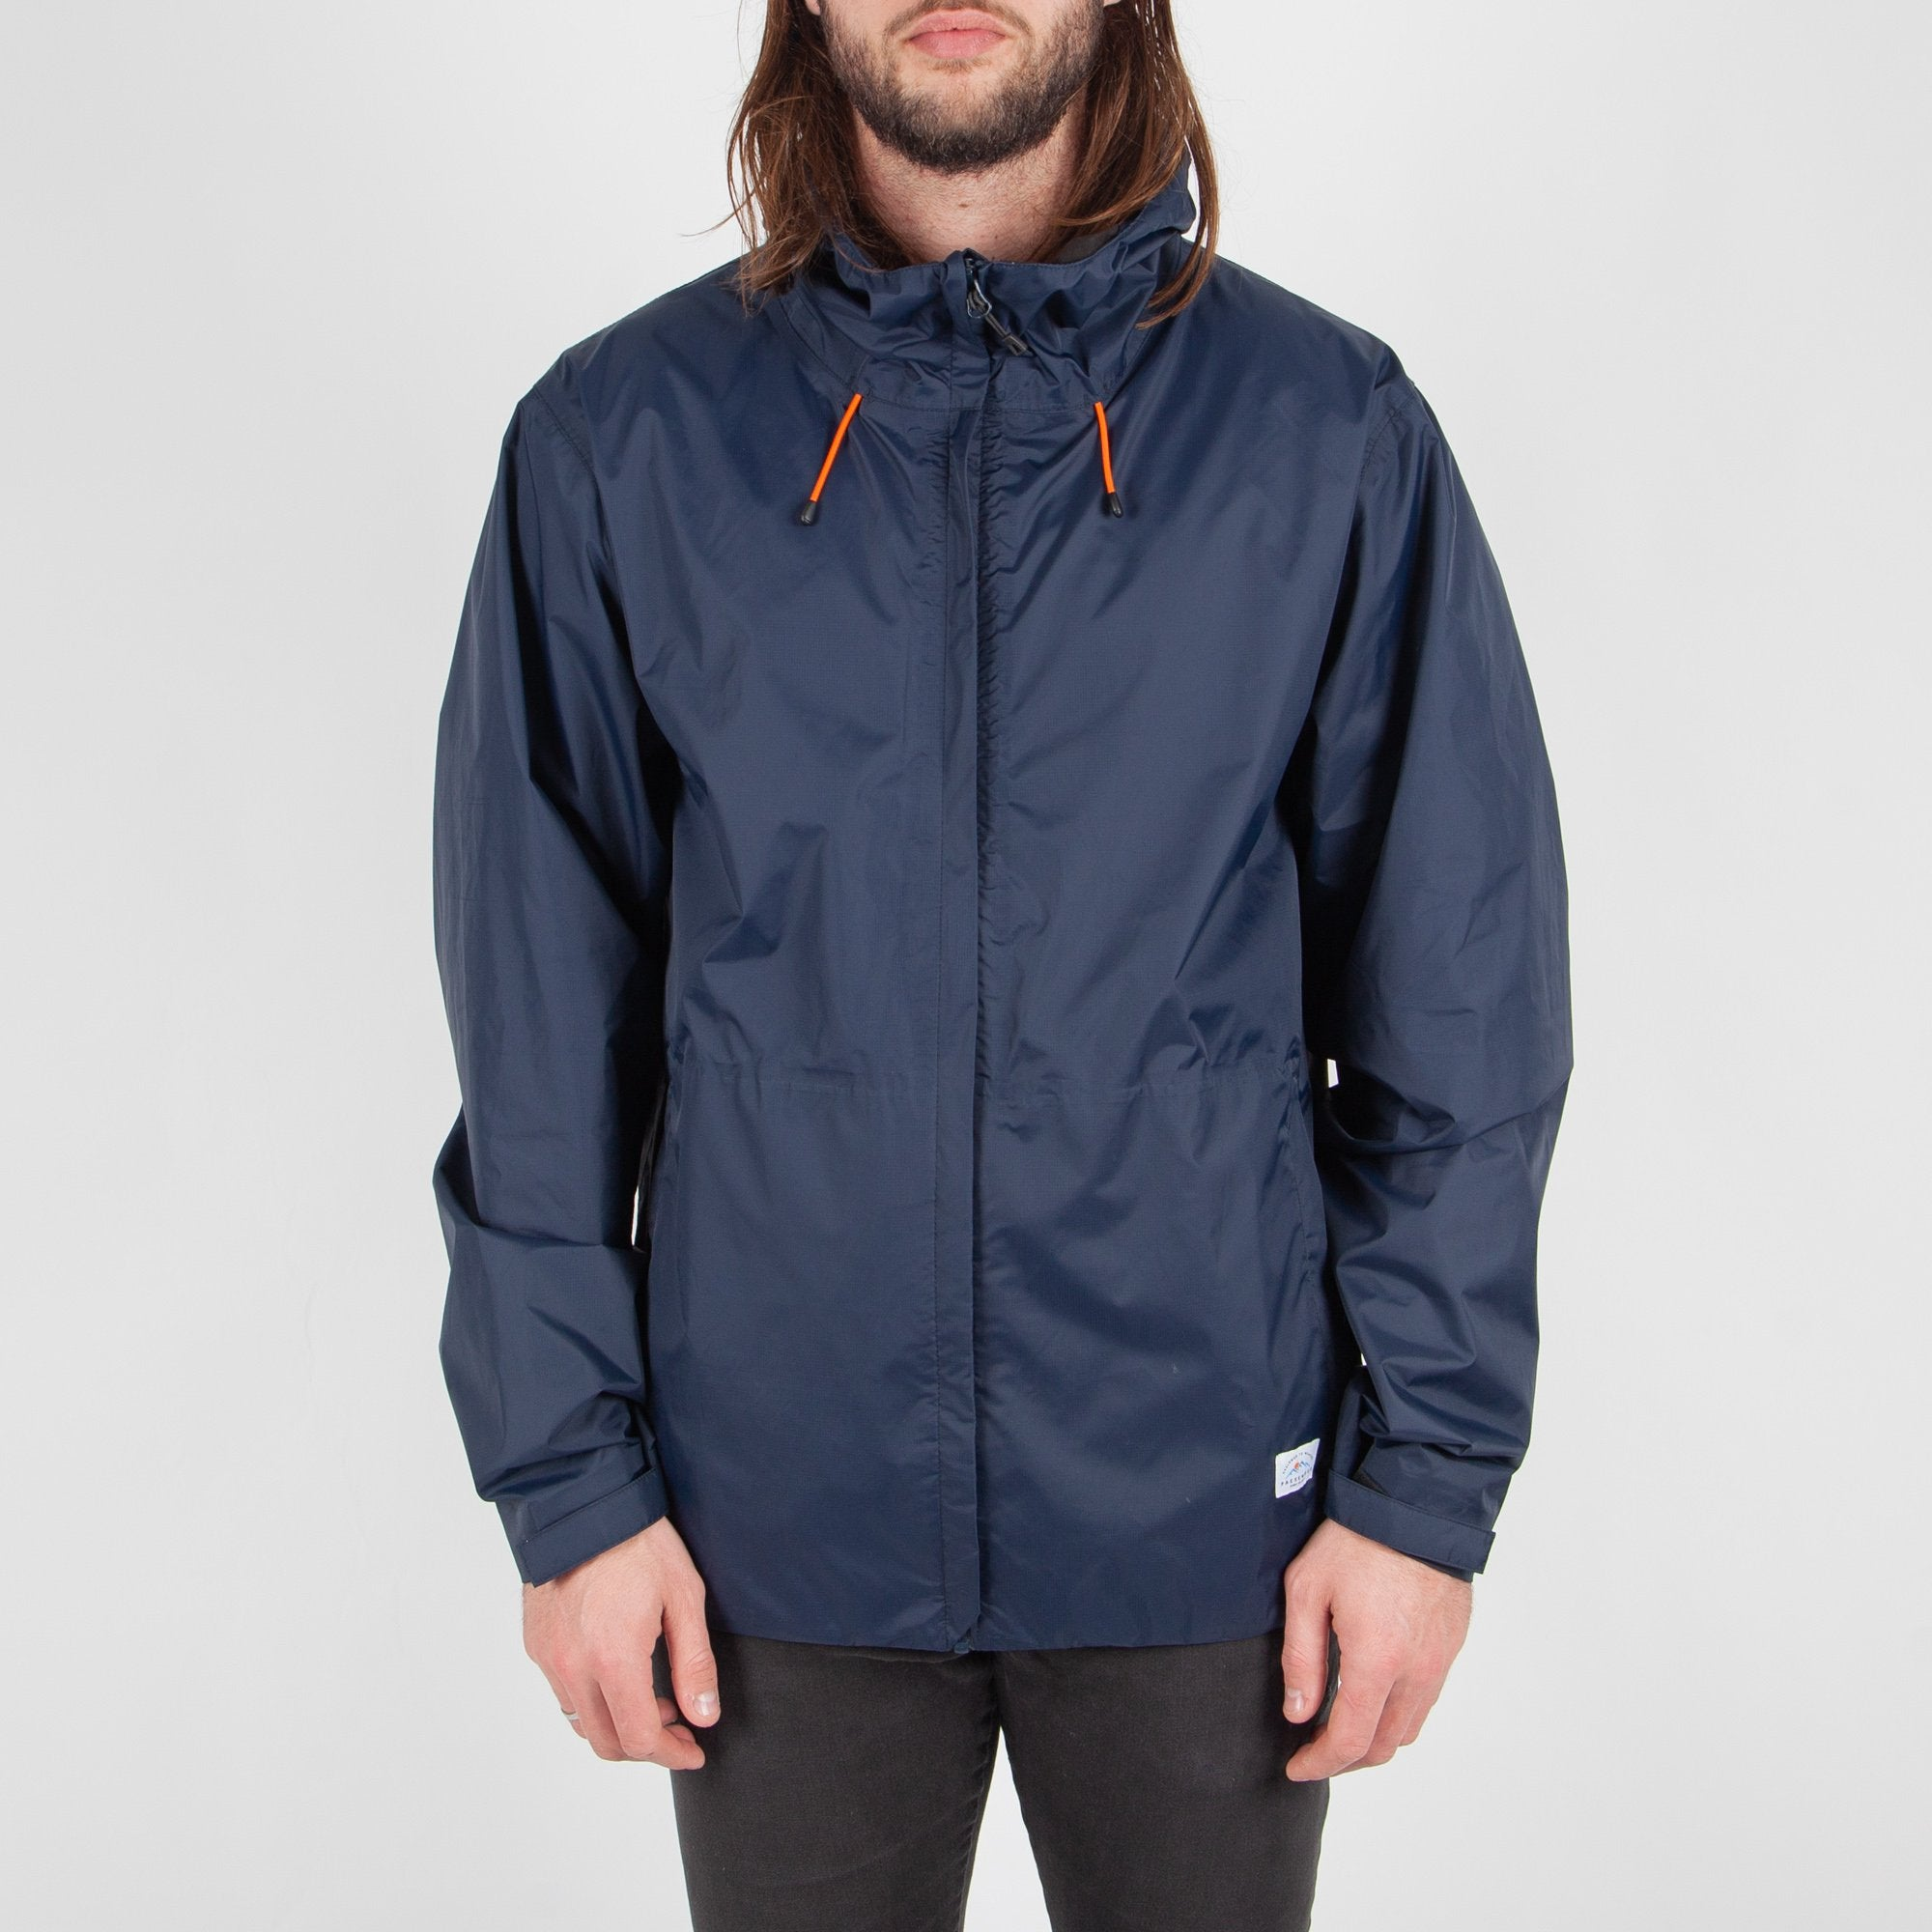 Norcal Waterproof Jacket - Navy image 2